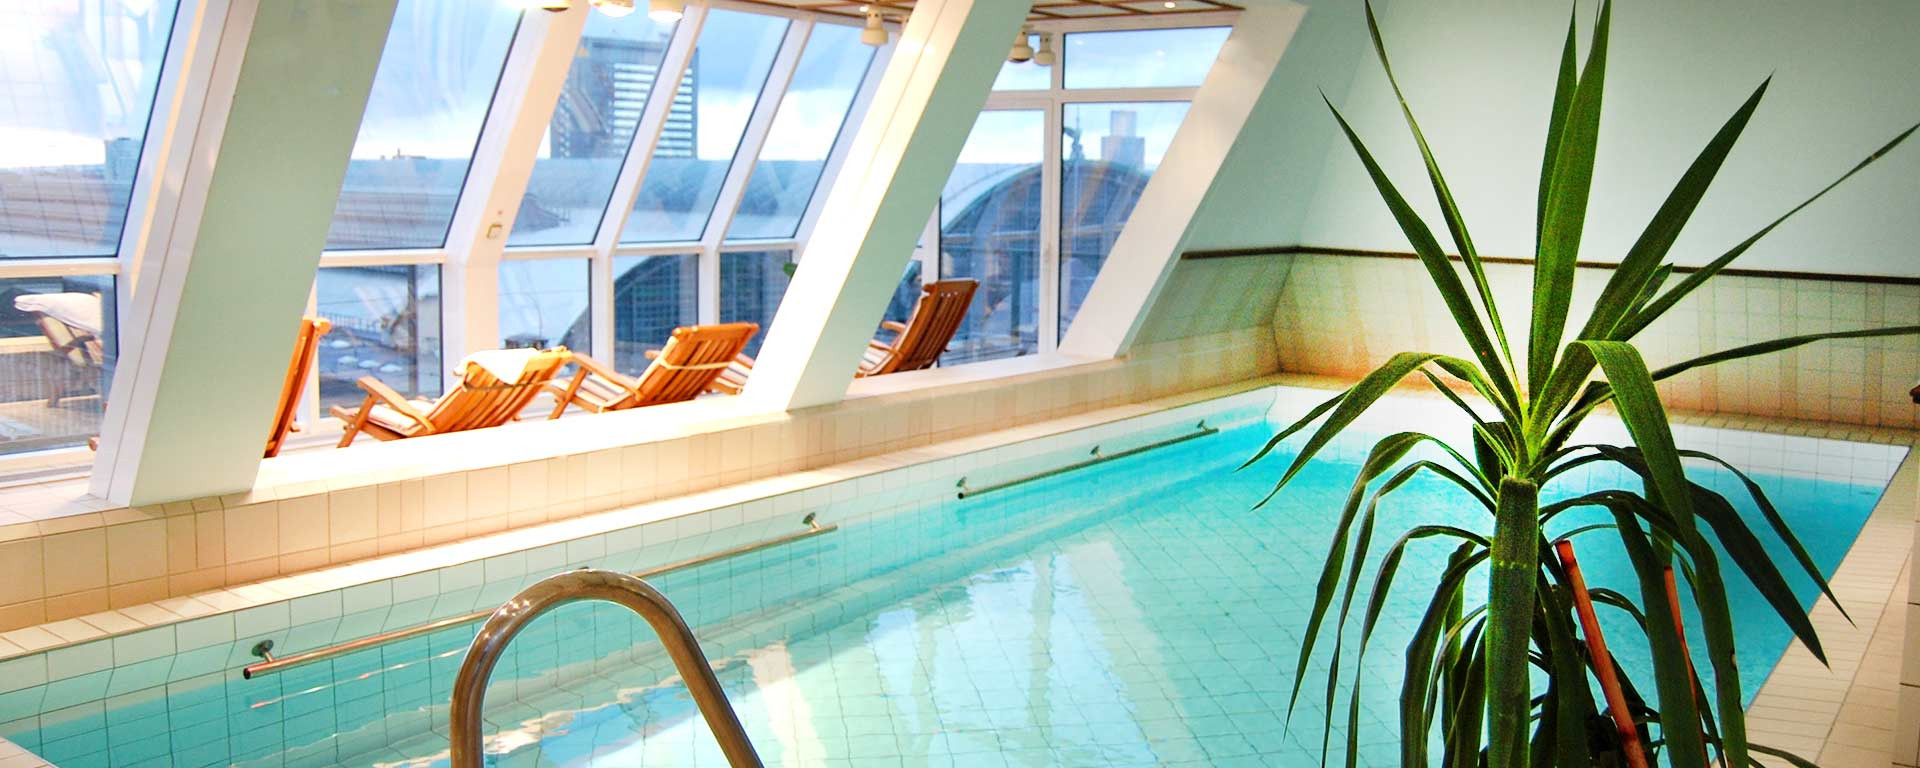 SAVOY Hotel Frankfurt Rooftop-Swimming-Pool